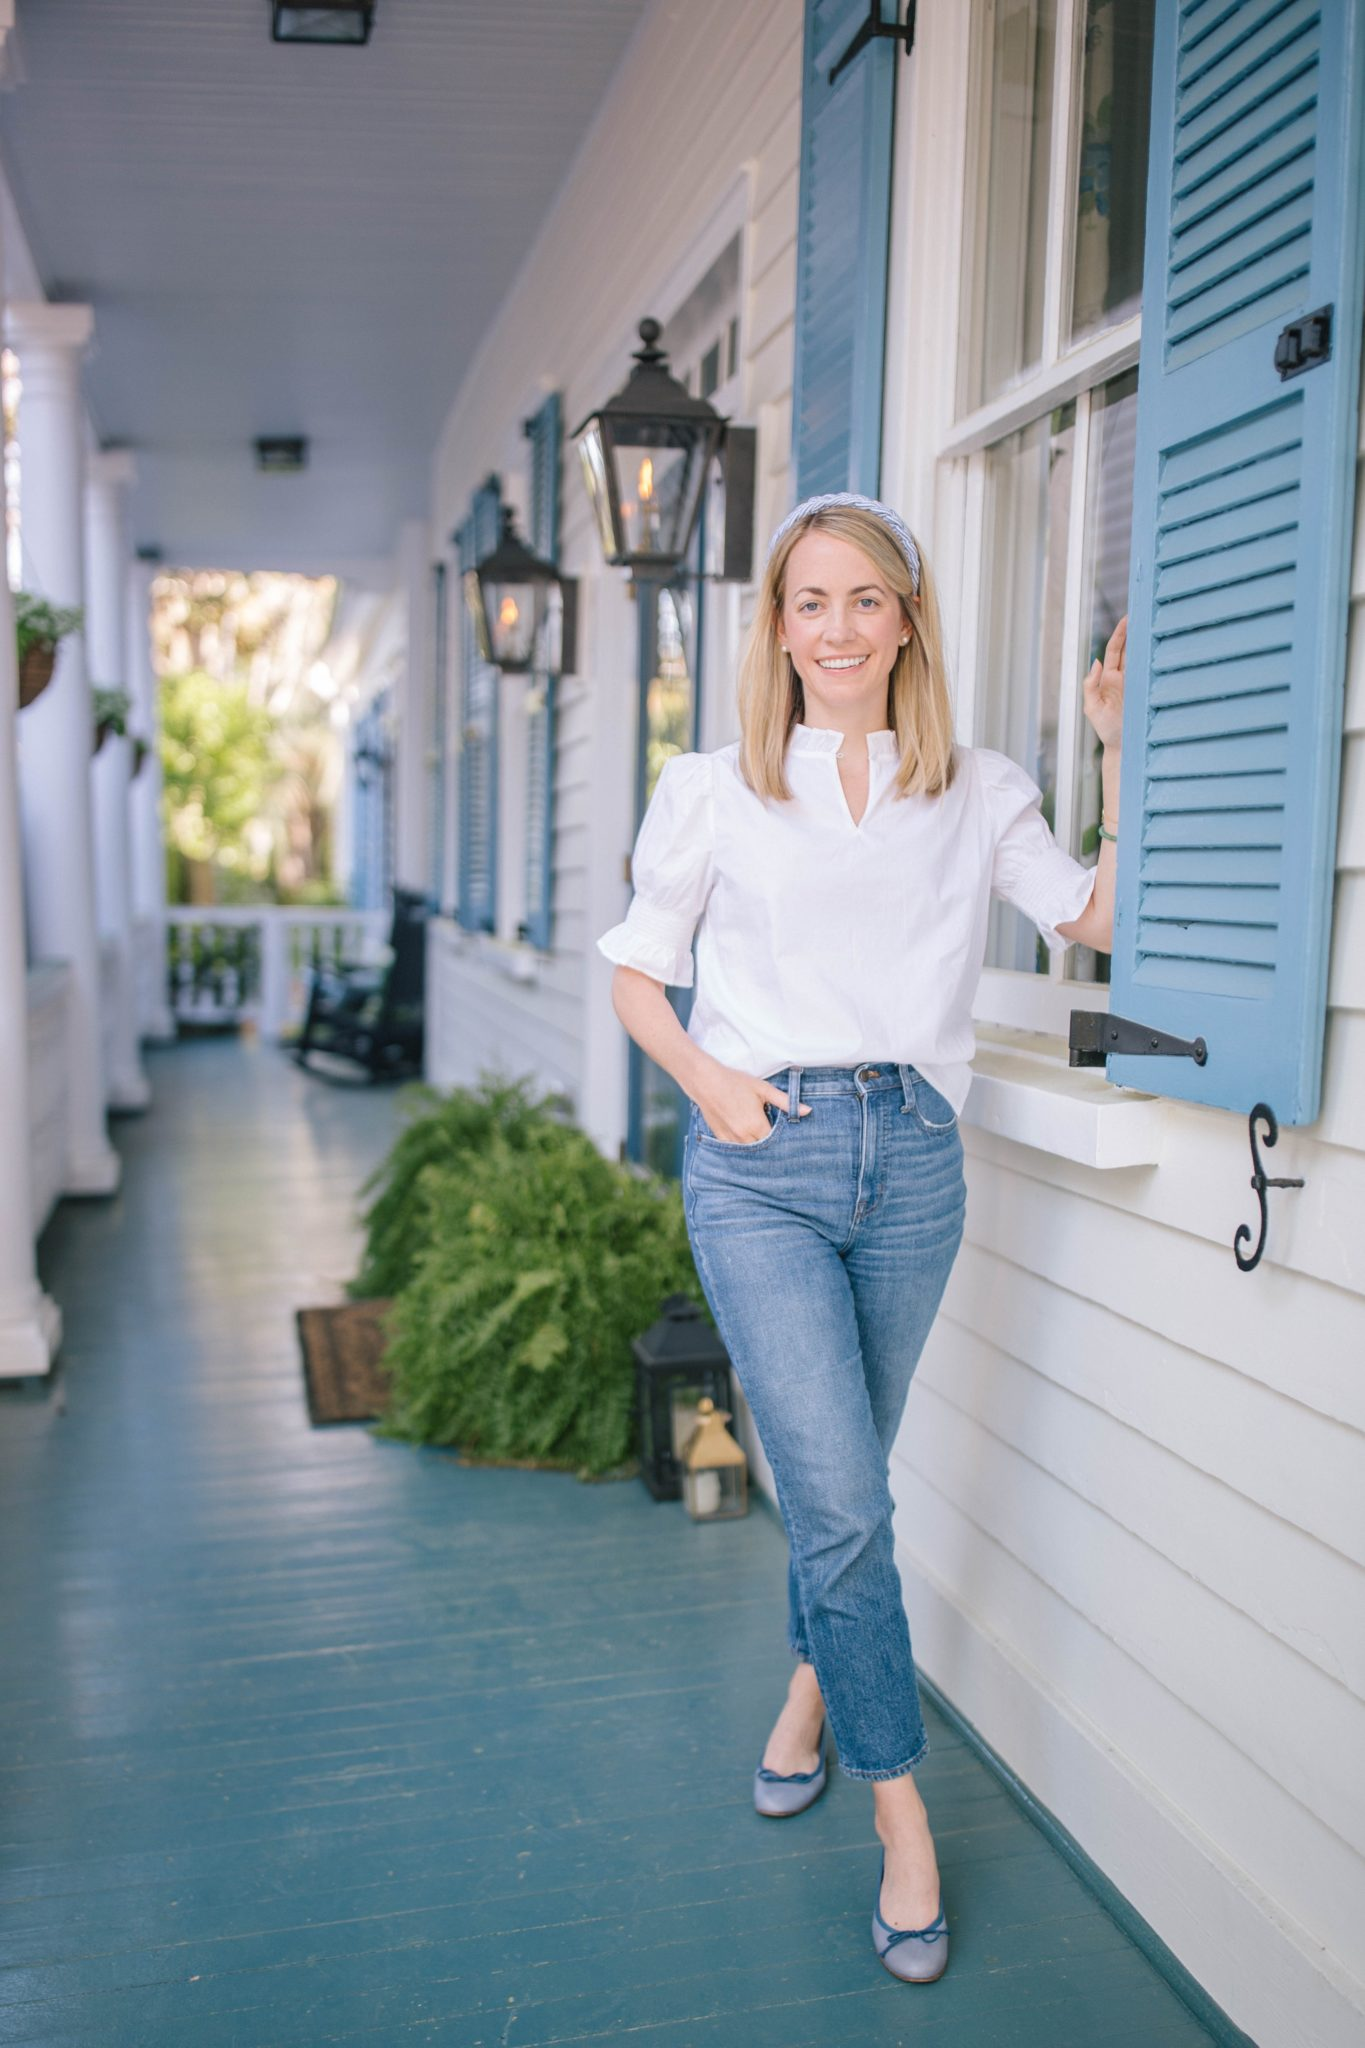 Fresh white tops and blouses for spring | Rhyme & Reason